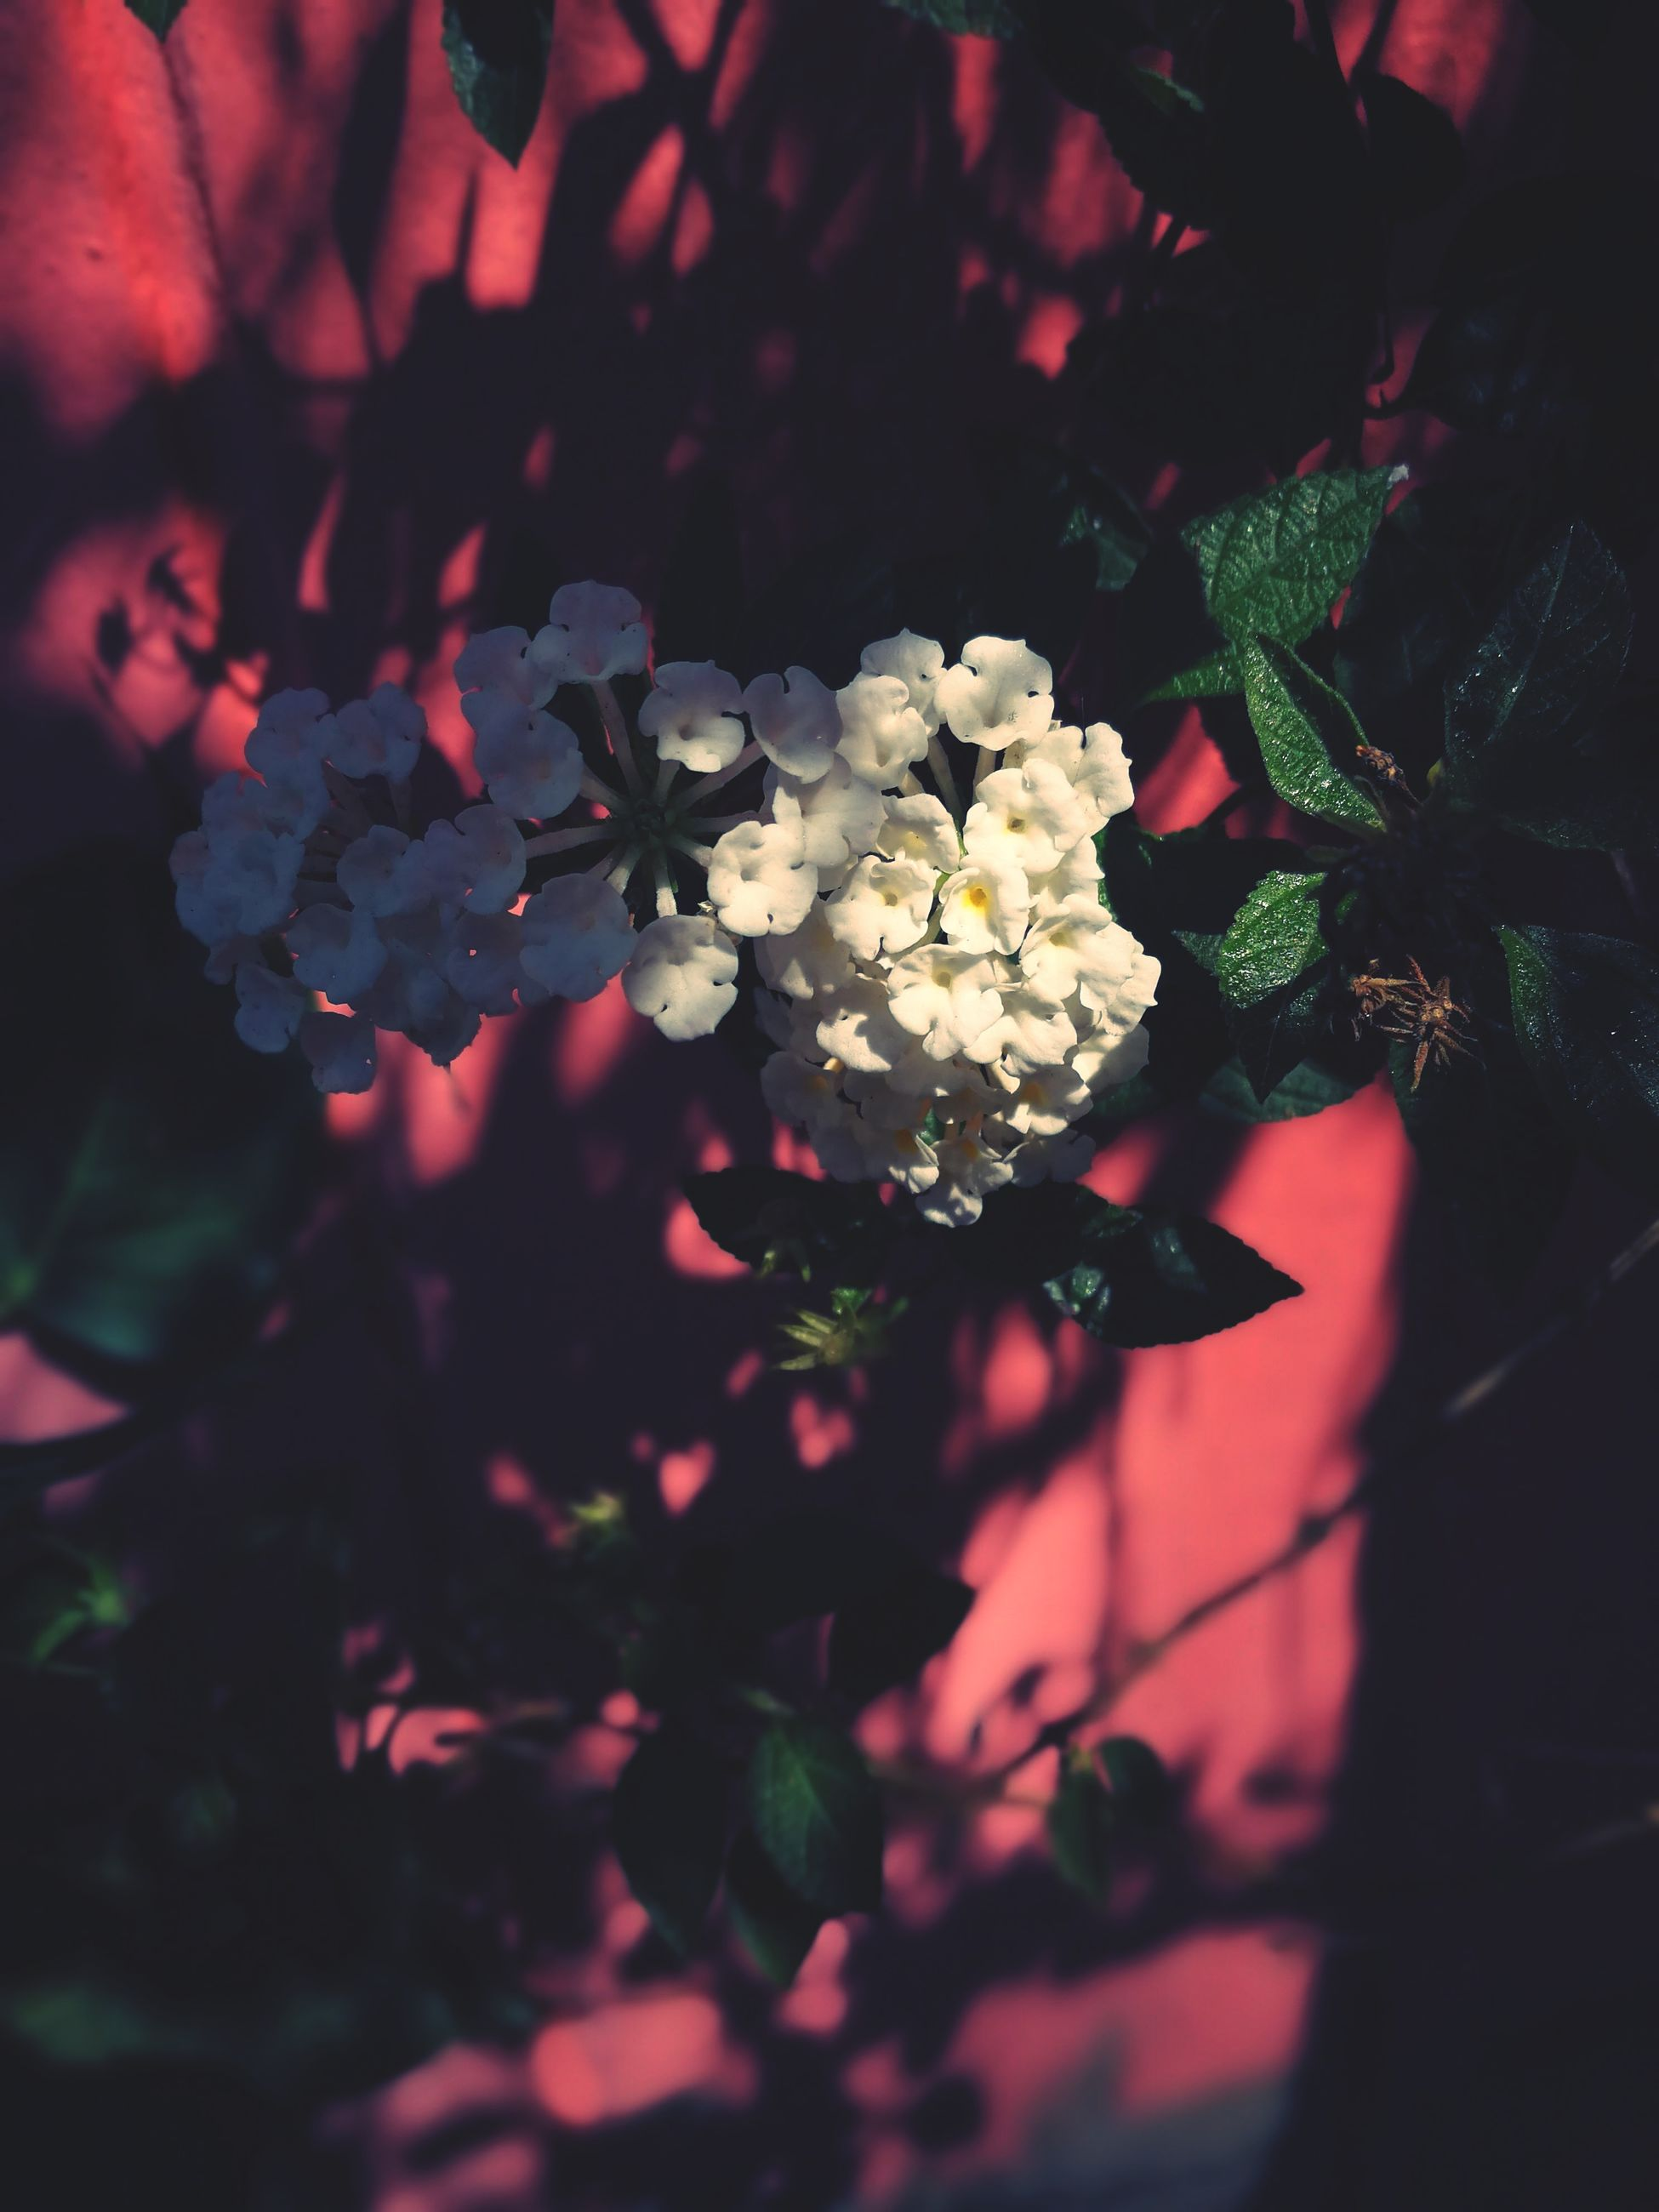 red, plant, darkness, nature, petal, flower, flowering plant, beauty in nature, close-up, leaf, no people, light, tree, growth, plant part, macro photography, branch, freshness, focus on foreground, outdoors, selective focus, black, sunlight, fragility